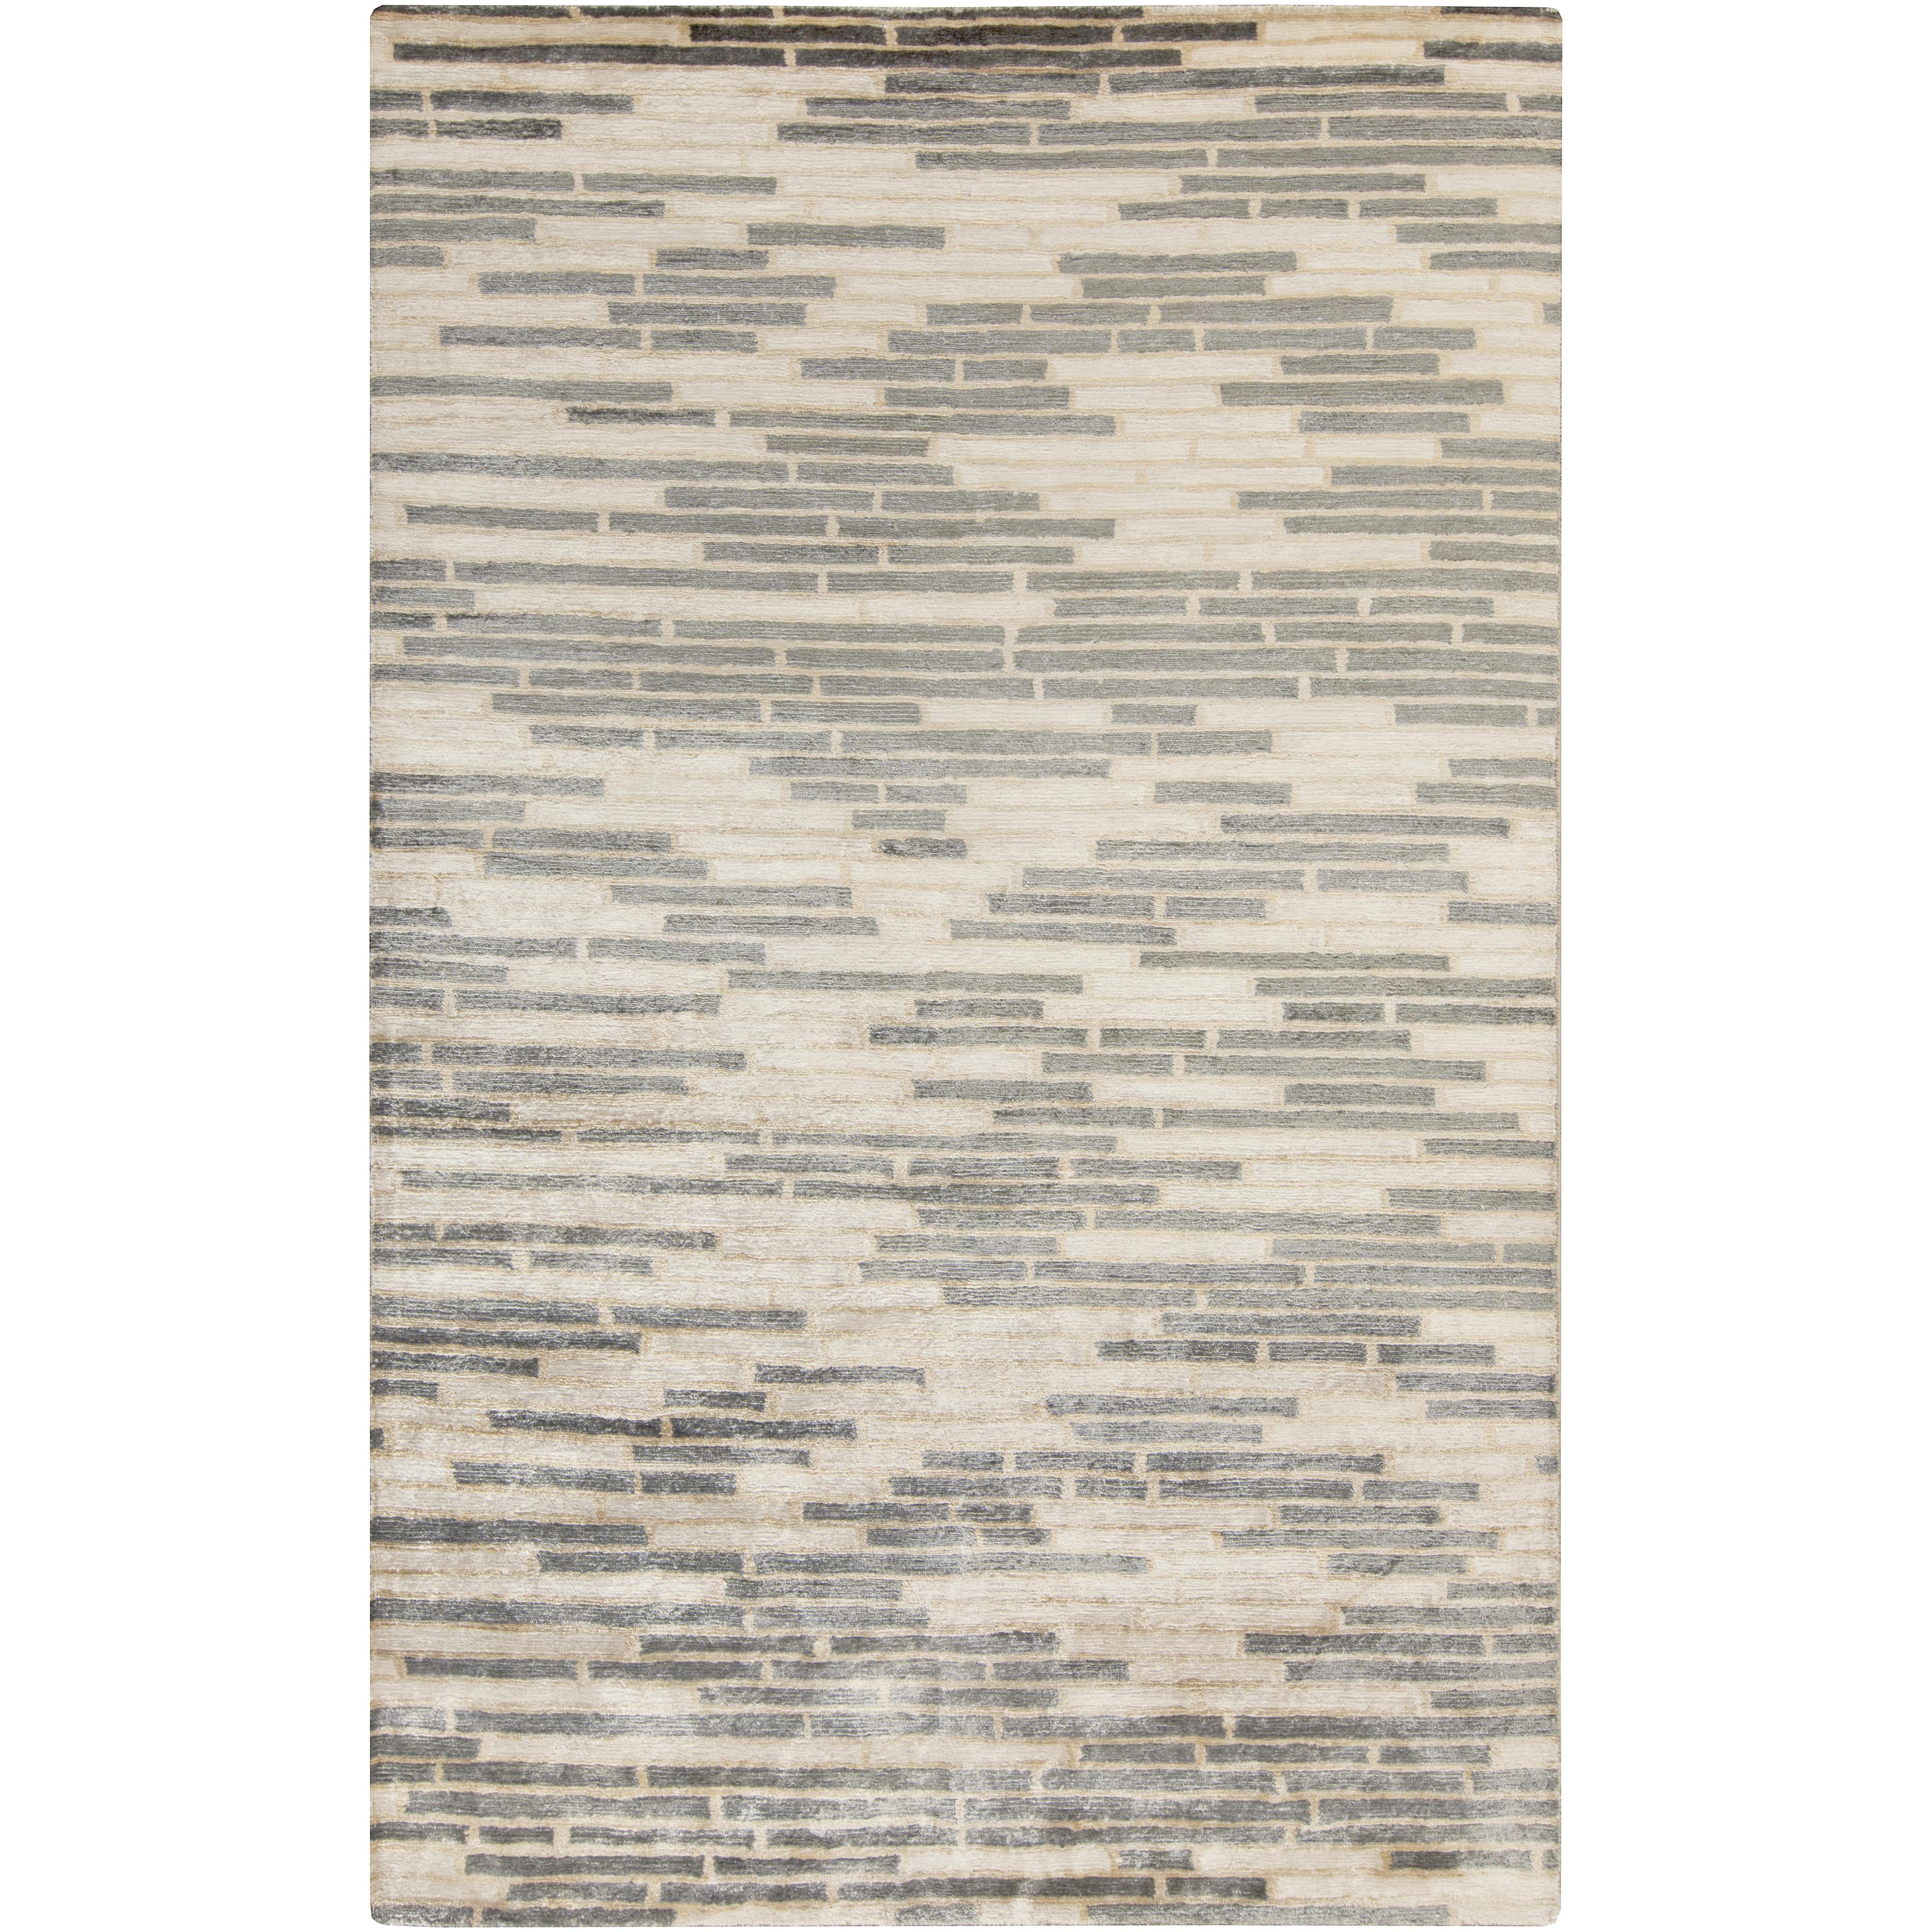 Surya Rugs Platinum 9' x 13' - Item Number: PLAT9017-913